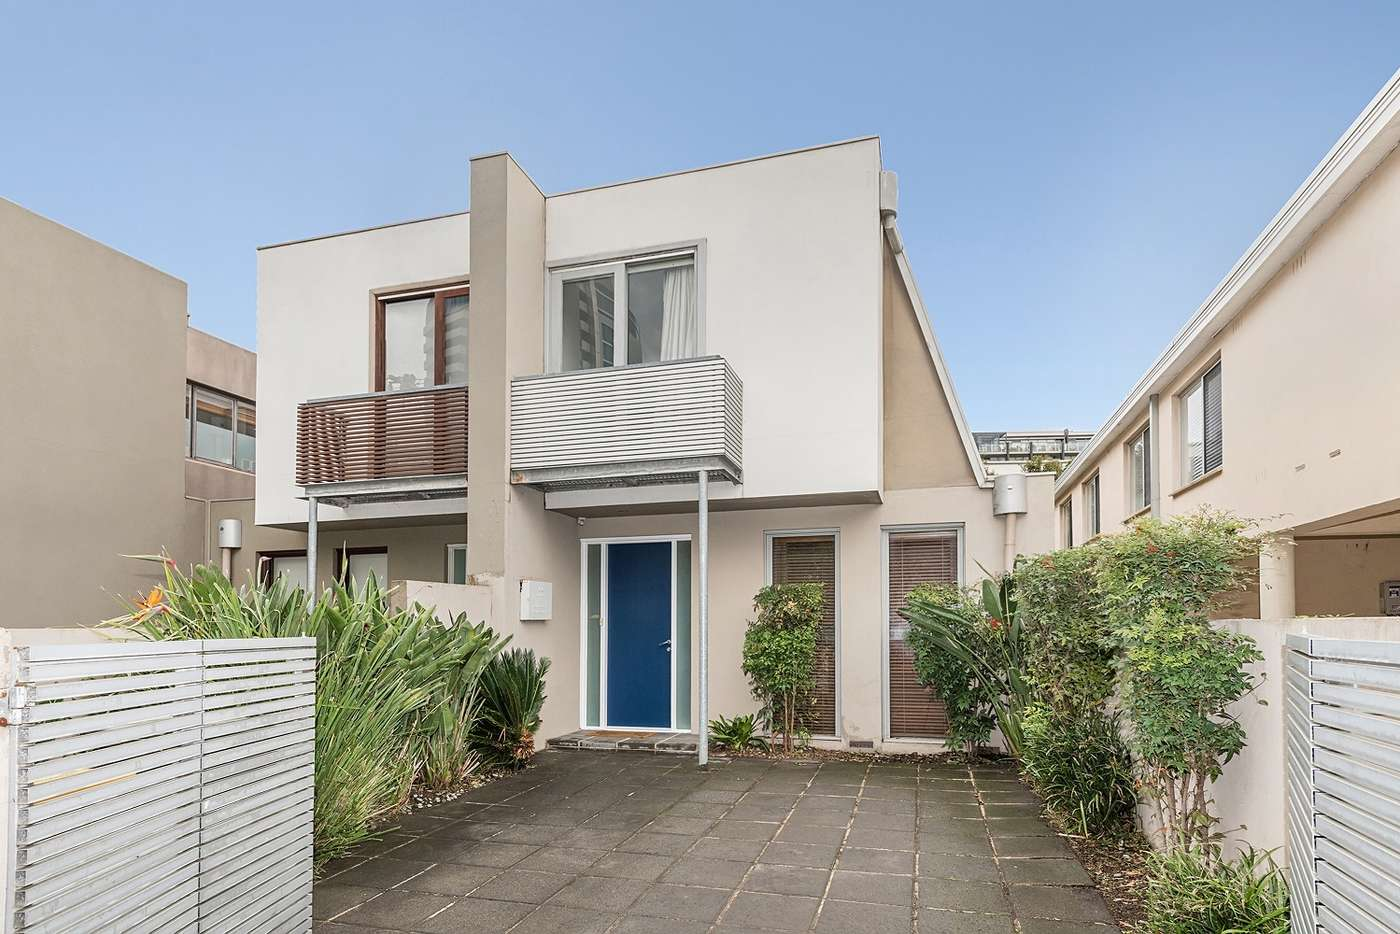 Main view of Homely house listing, 59 Esplanade West, Port Melbourne VIC 3207